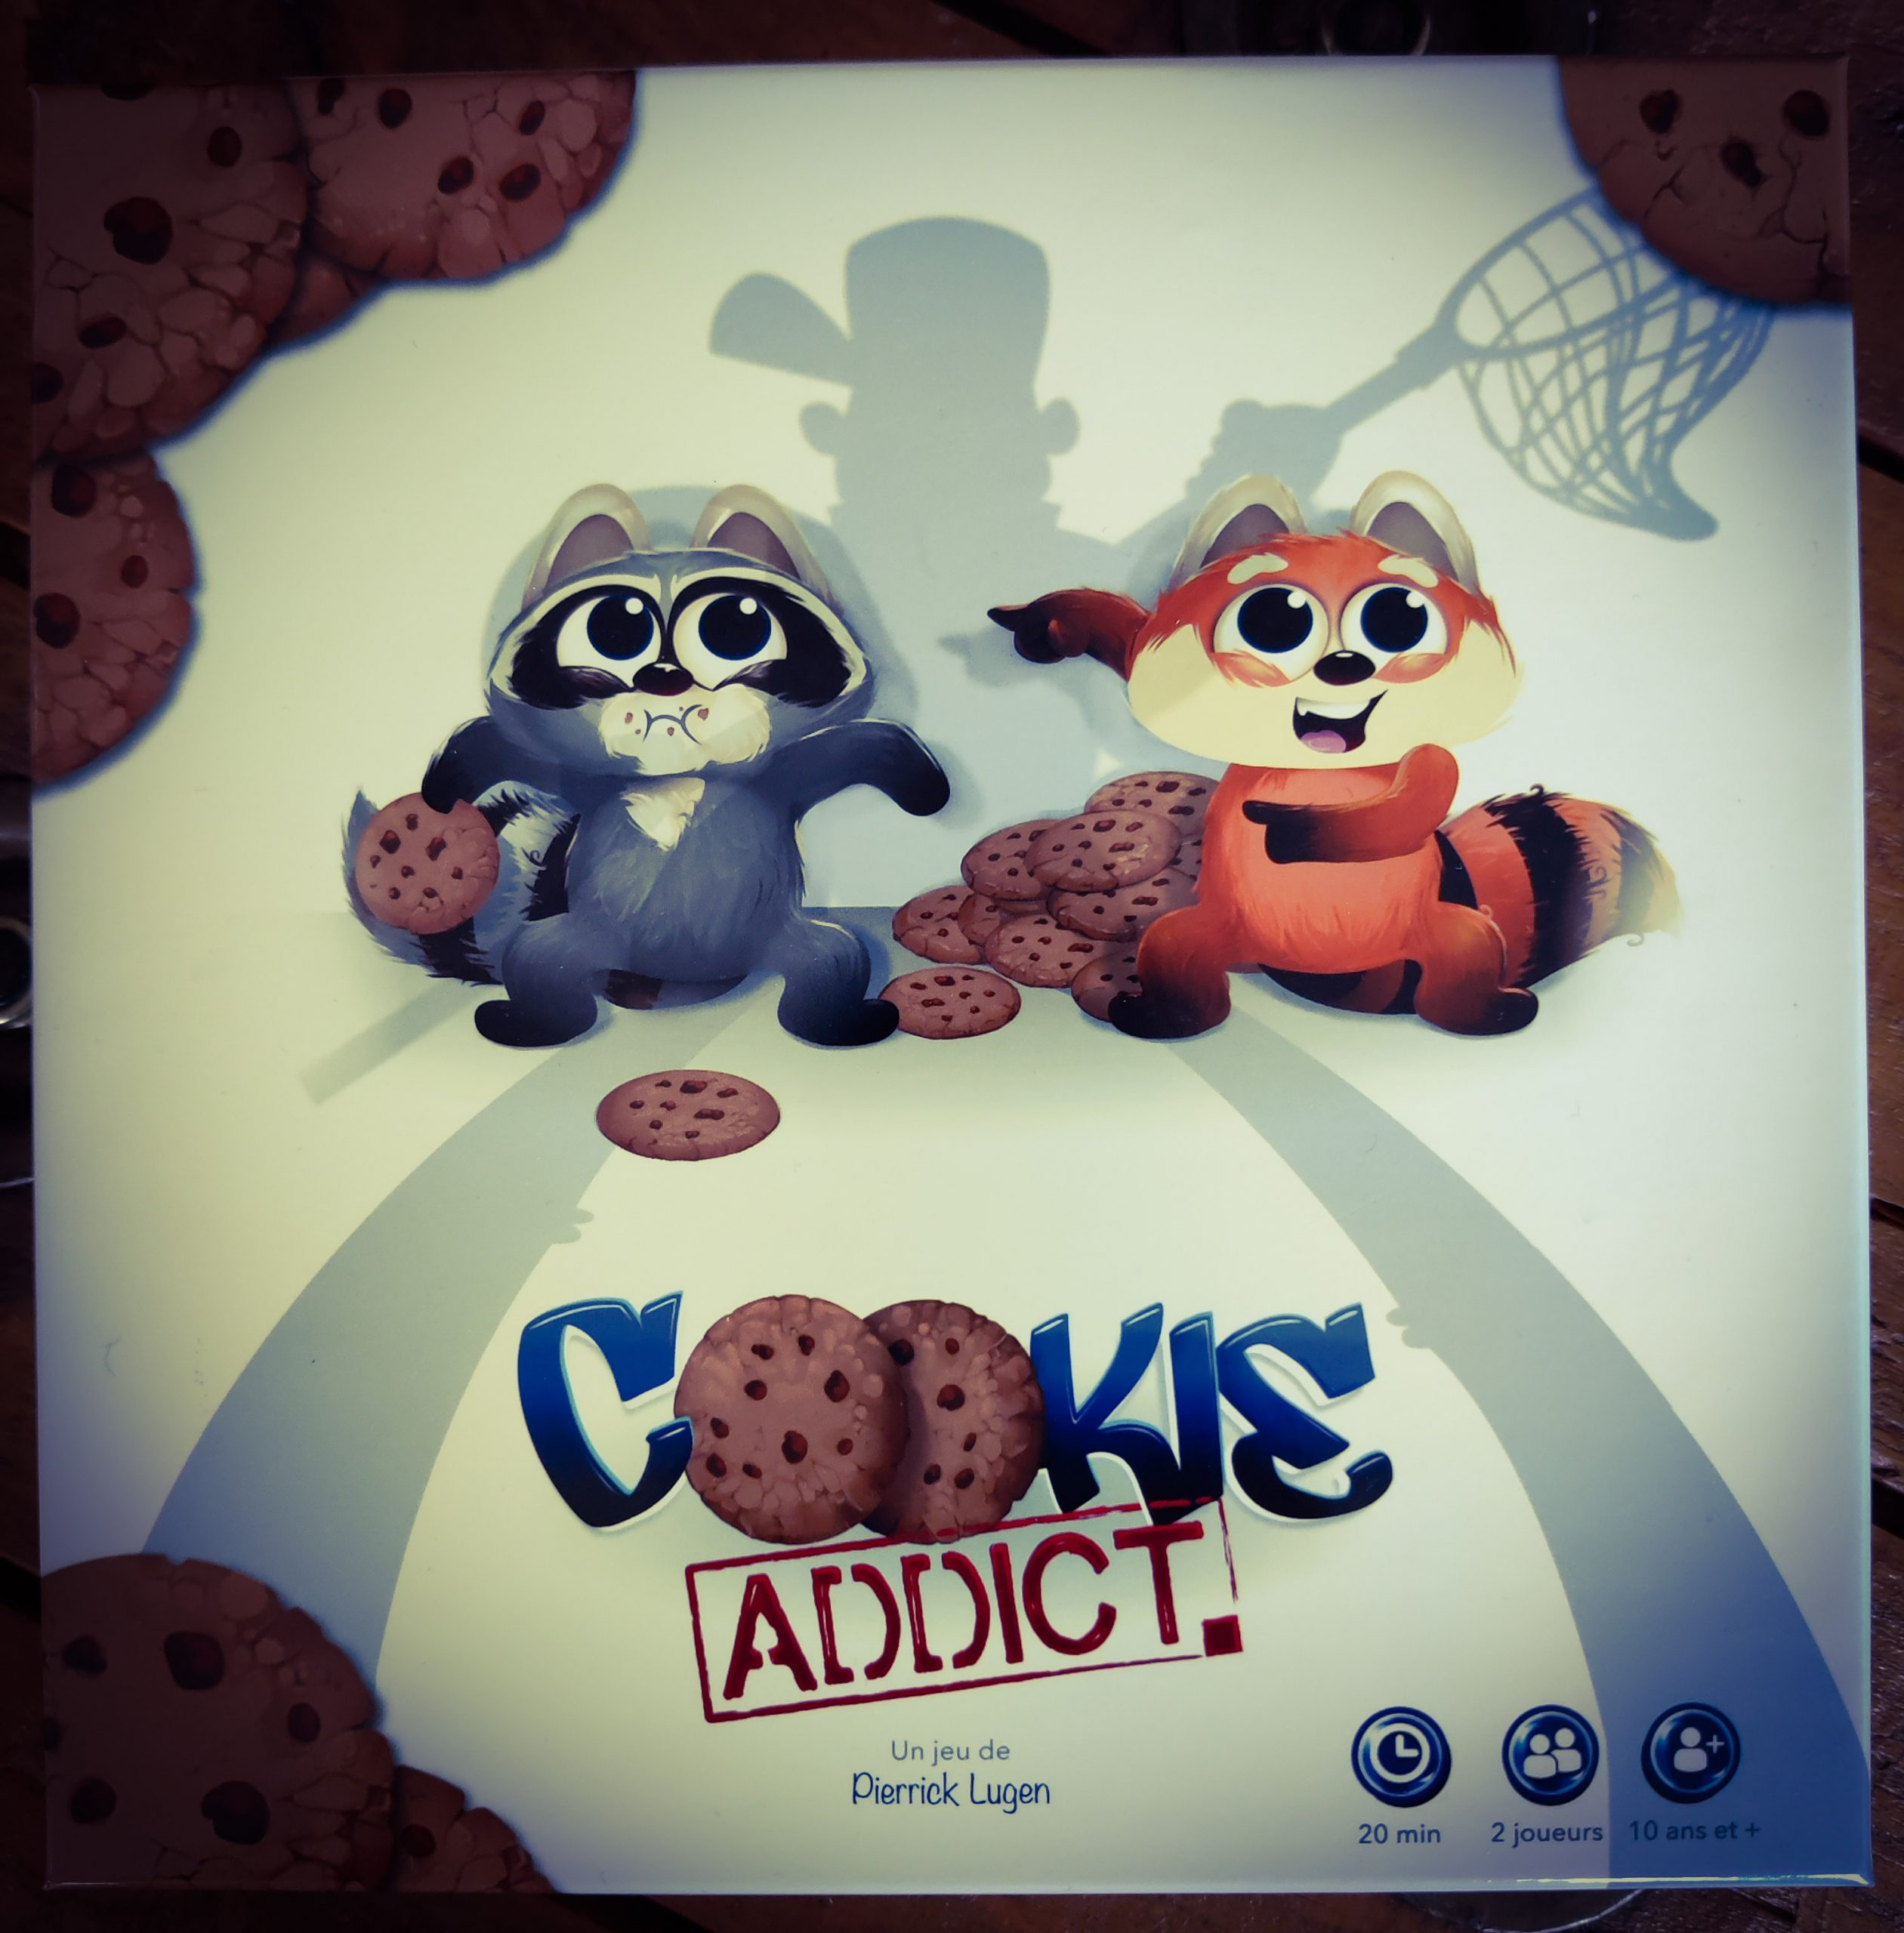 Cookie Addict, qui a volé le cookie du marchand?